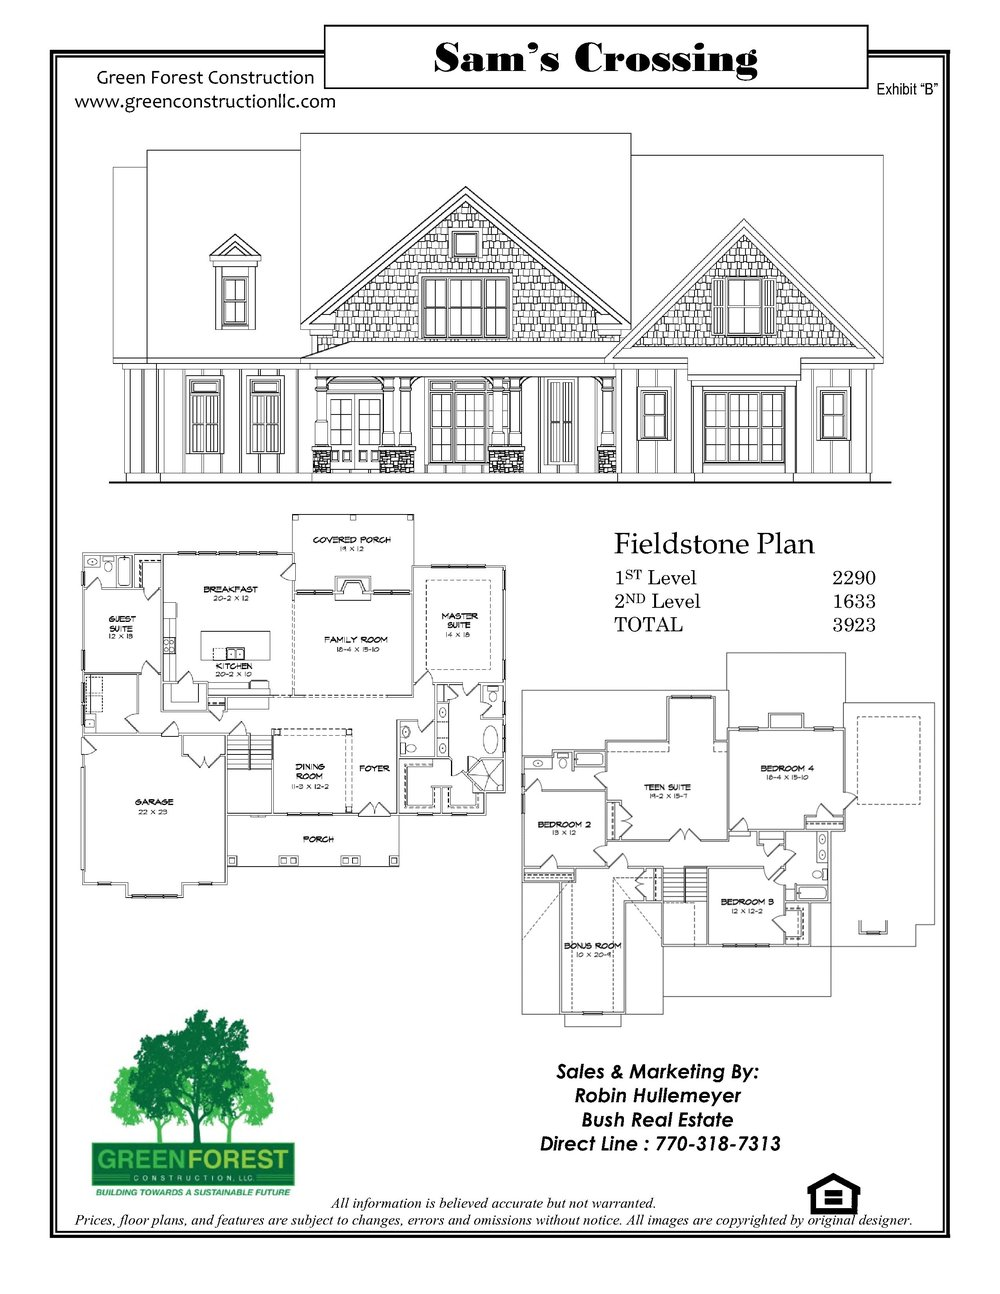 09.11.17 - Sams Crossing Fieldstone Plan.jpg